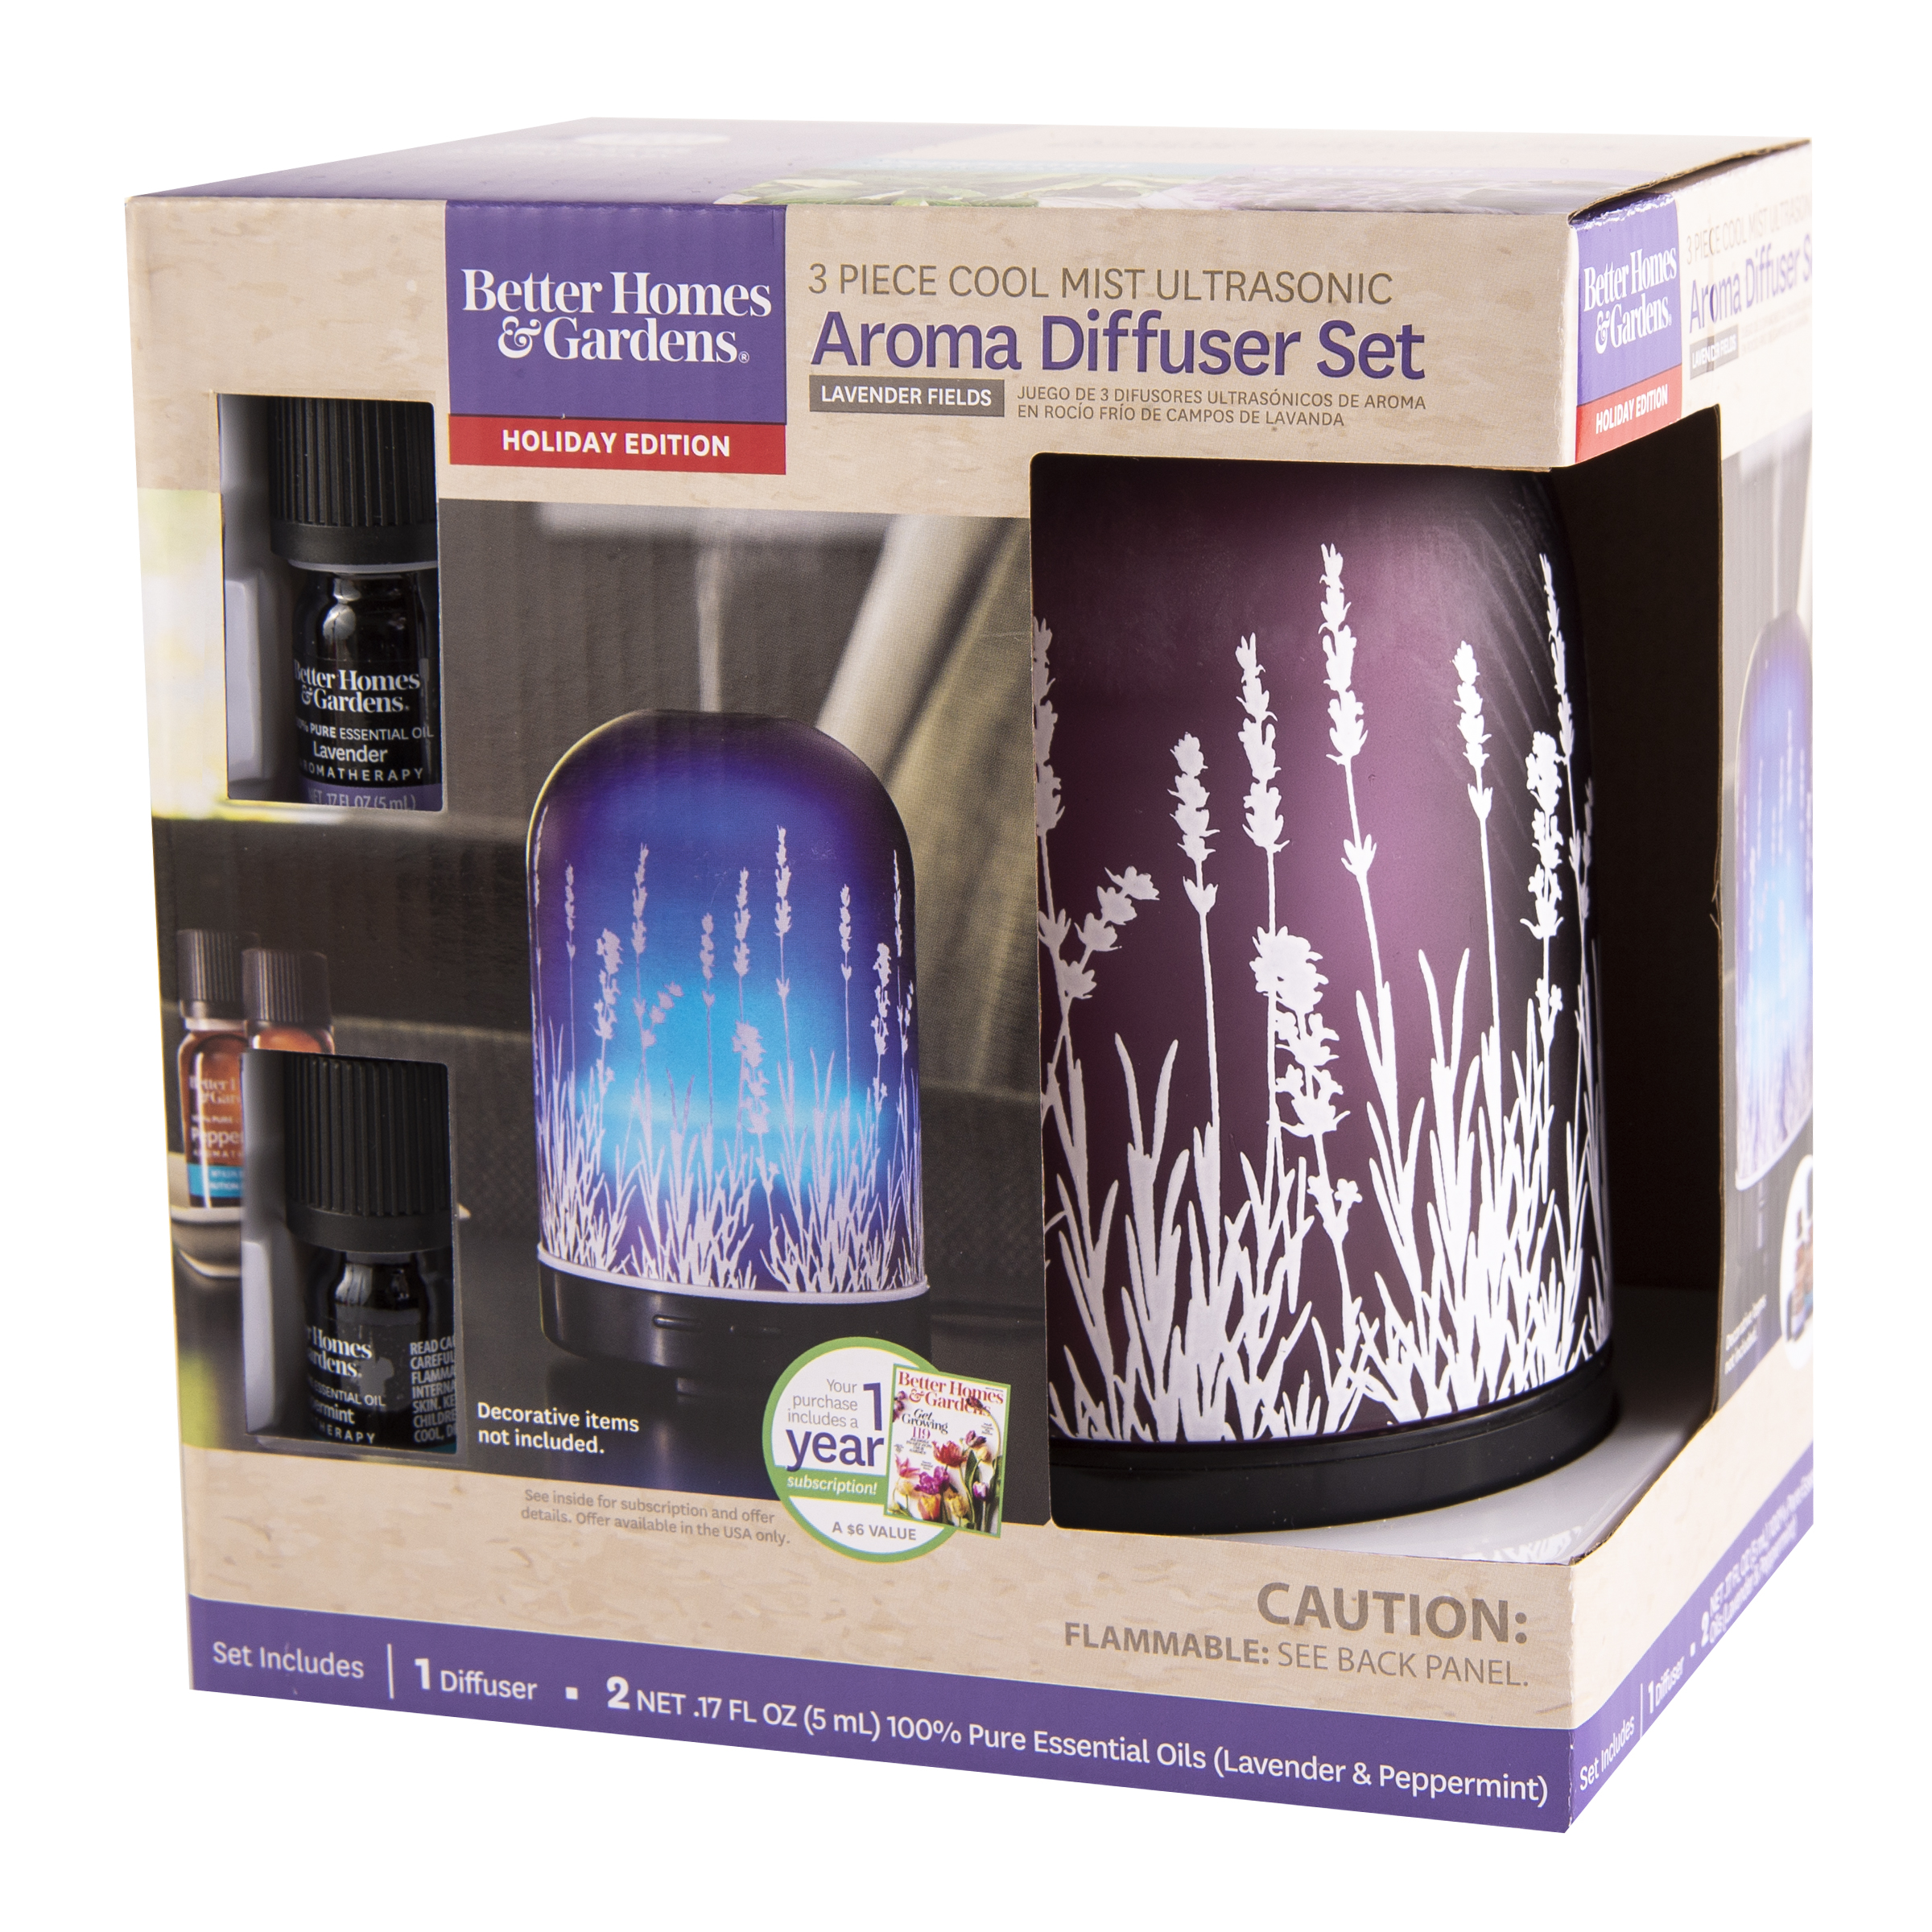 Better Homes & Gardens 3 Piece Lavender Fields 100 mL Cool Mist Ultrasonic Aroma Diffuser Set